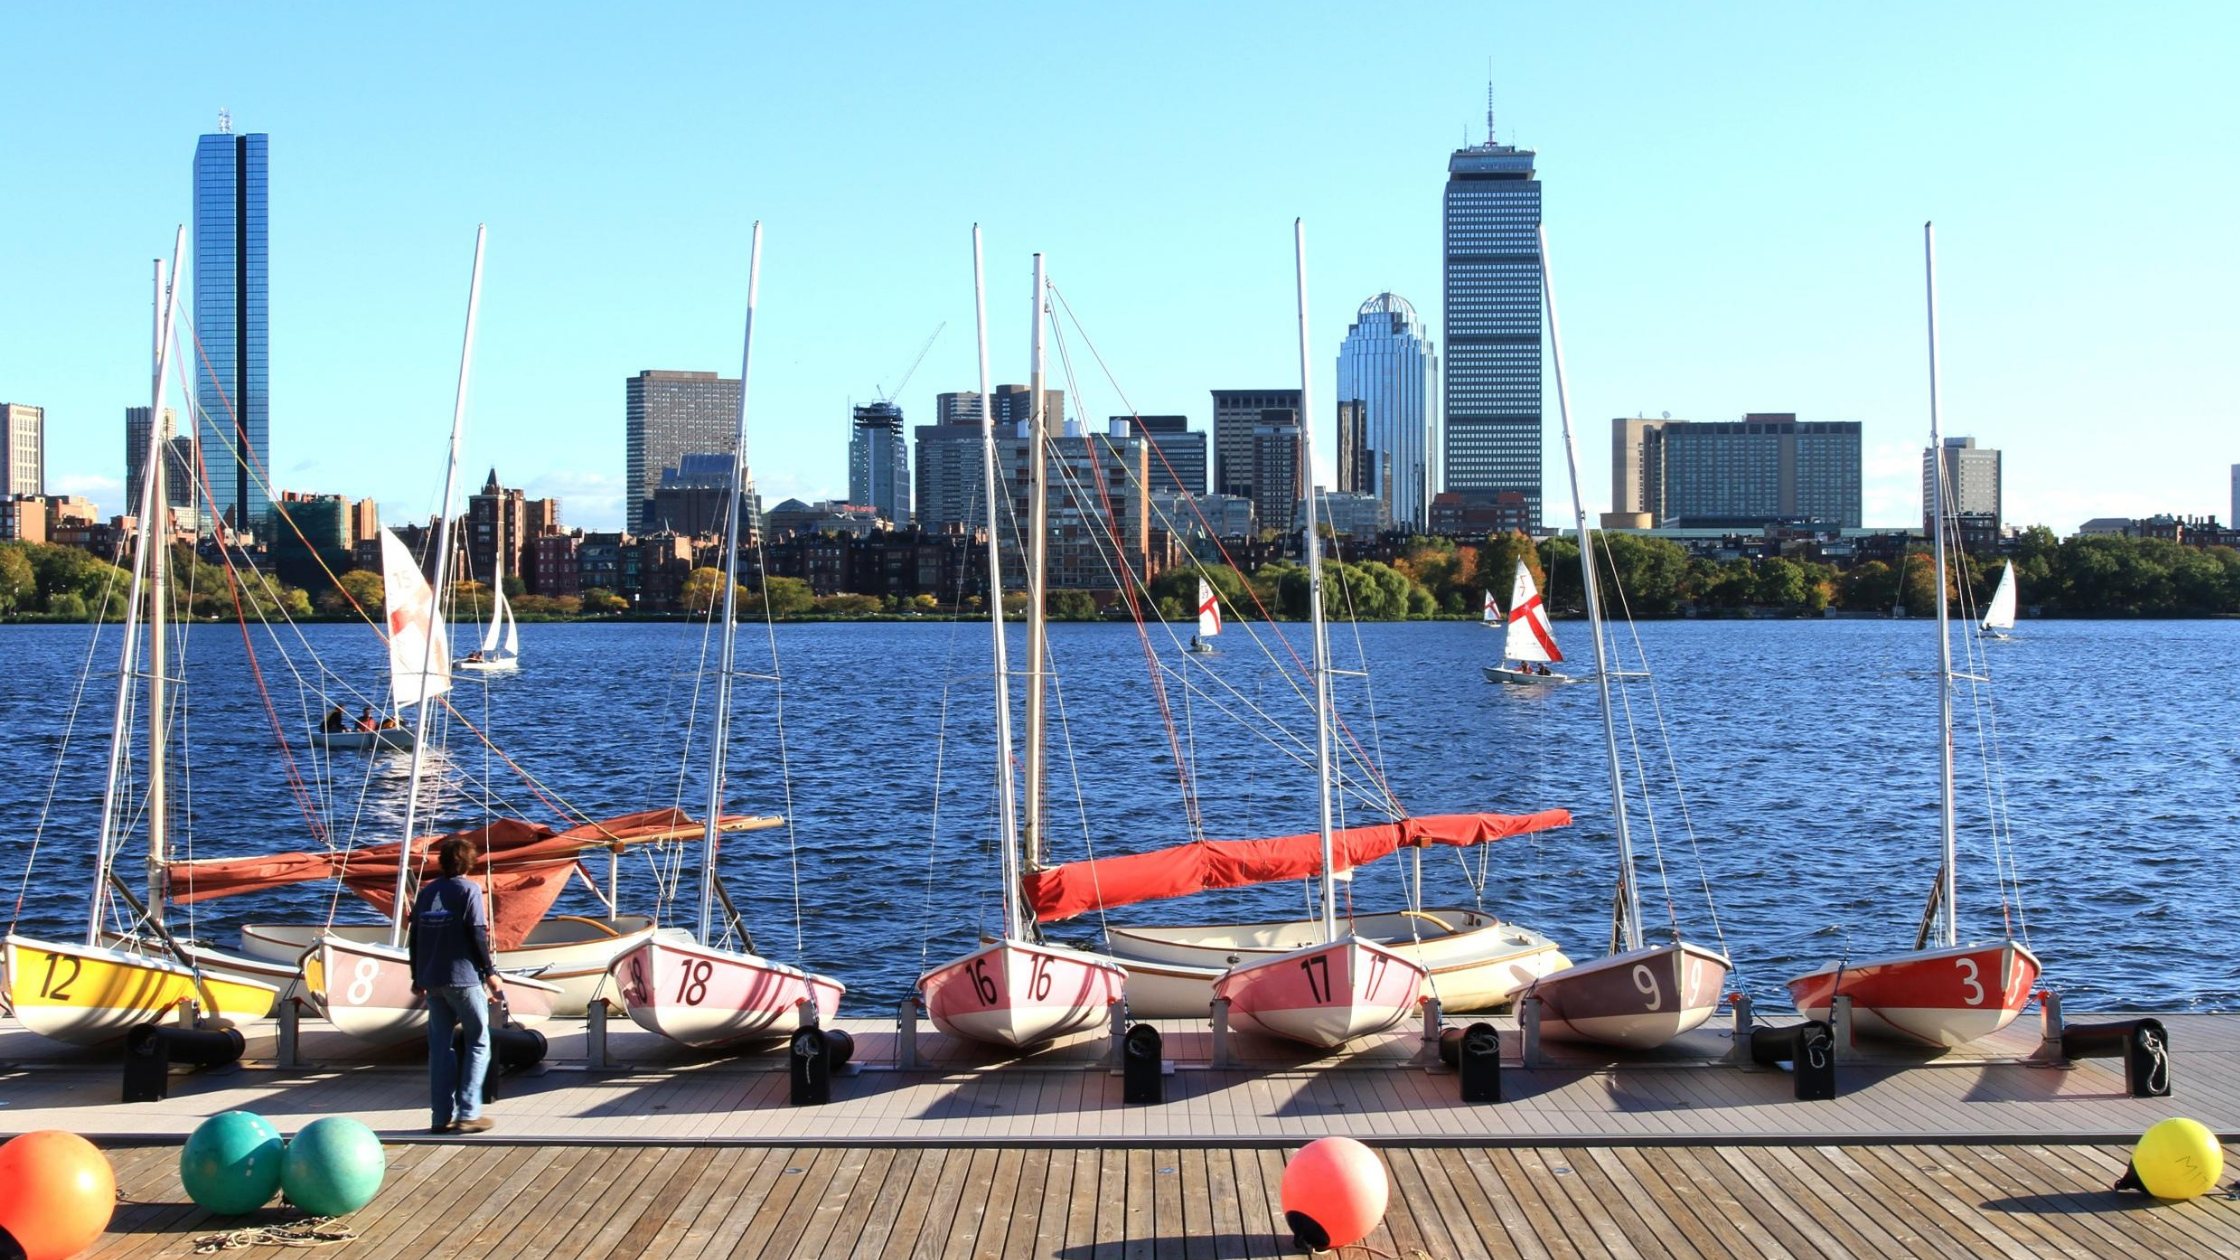 Fun Water Activities to Add to Your Boston Bucket List